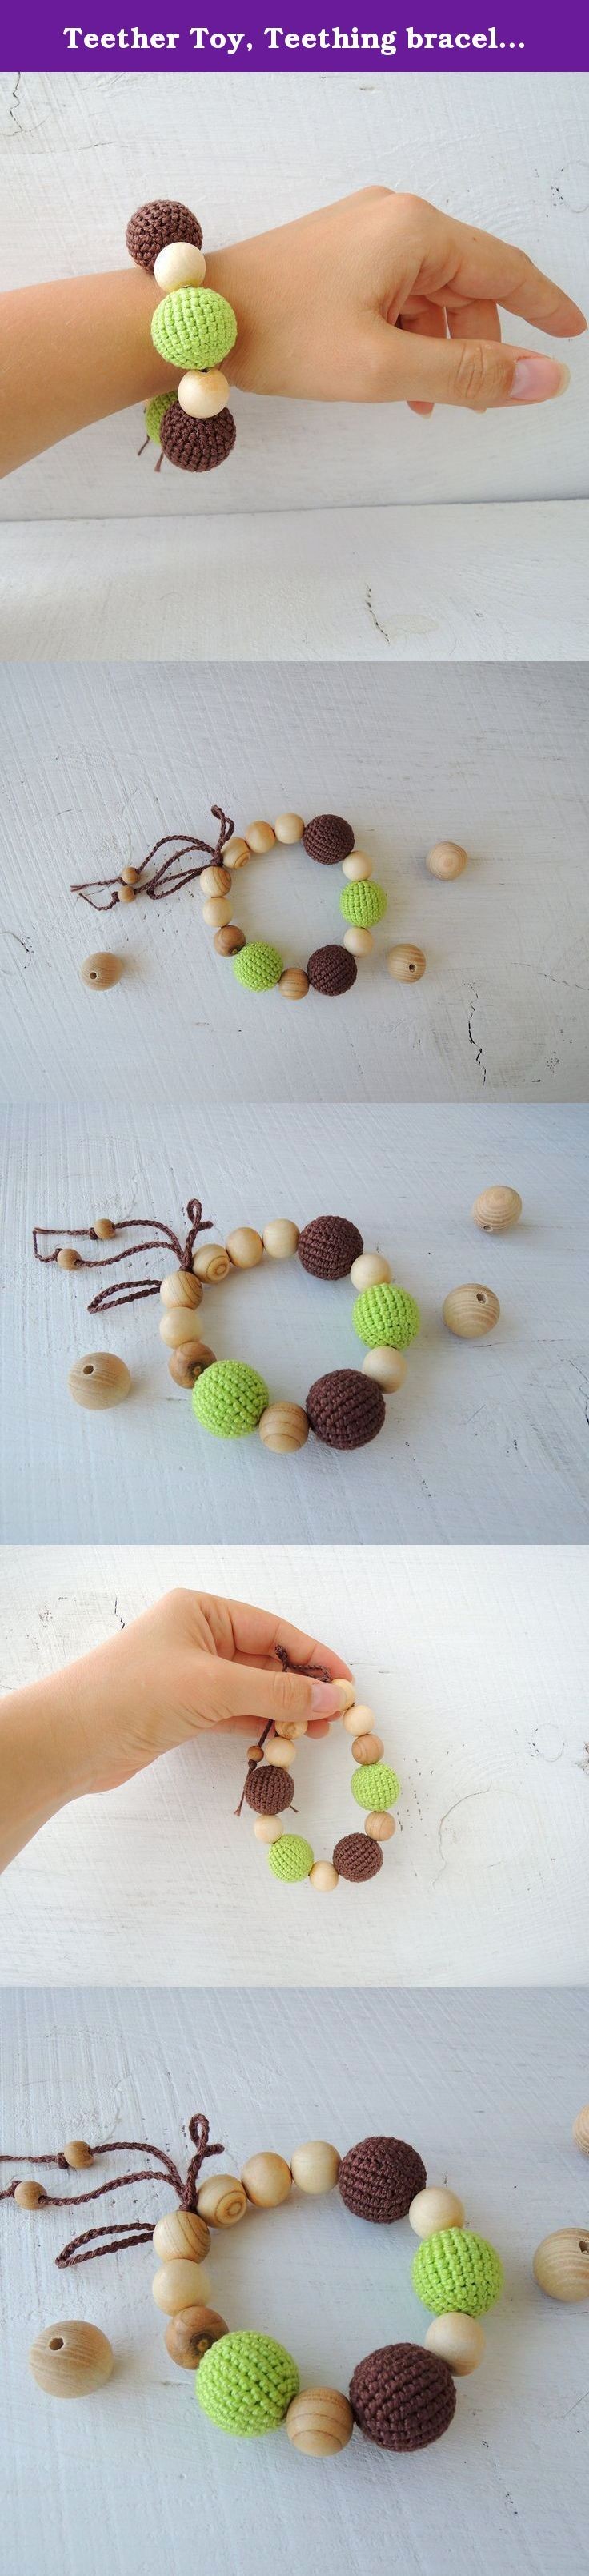 Teether Toy, Teething bracelet, Crocheted Wooden Beads, Cotton Yarns. Teething bracelet is a baby teething toy, can bite beads and scratch gums. Wooden beads are very pleasant to touch; crochet beads have textured surface and nice colors. These bracelets are made to be very safe for children. All parts are natural and well fixed.